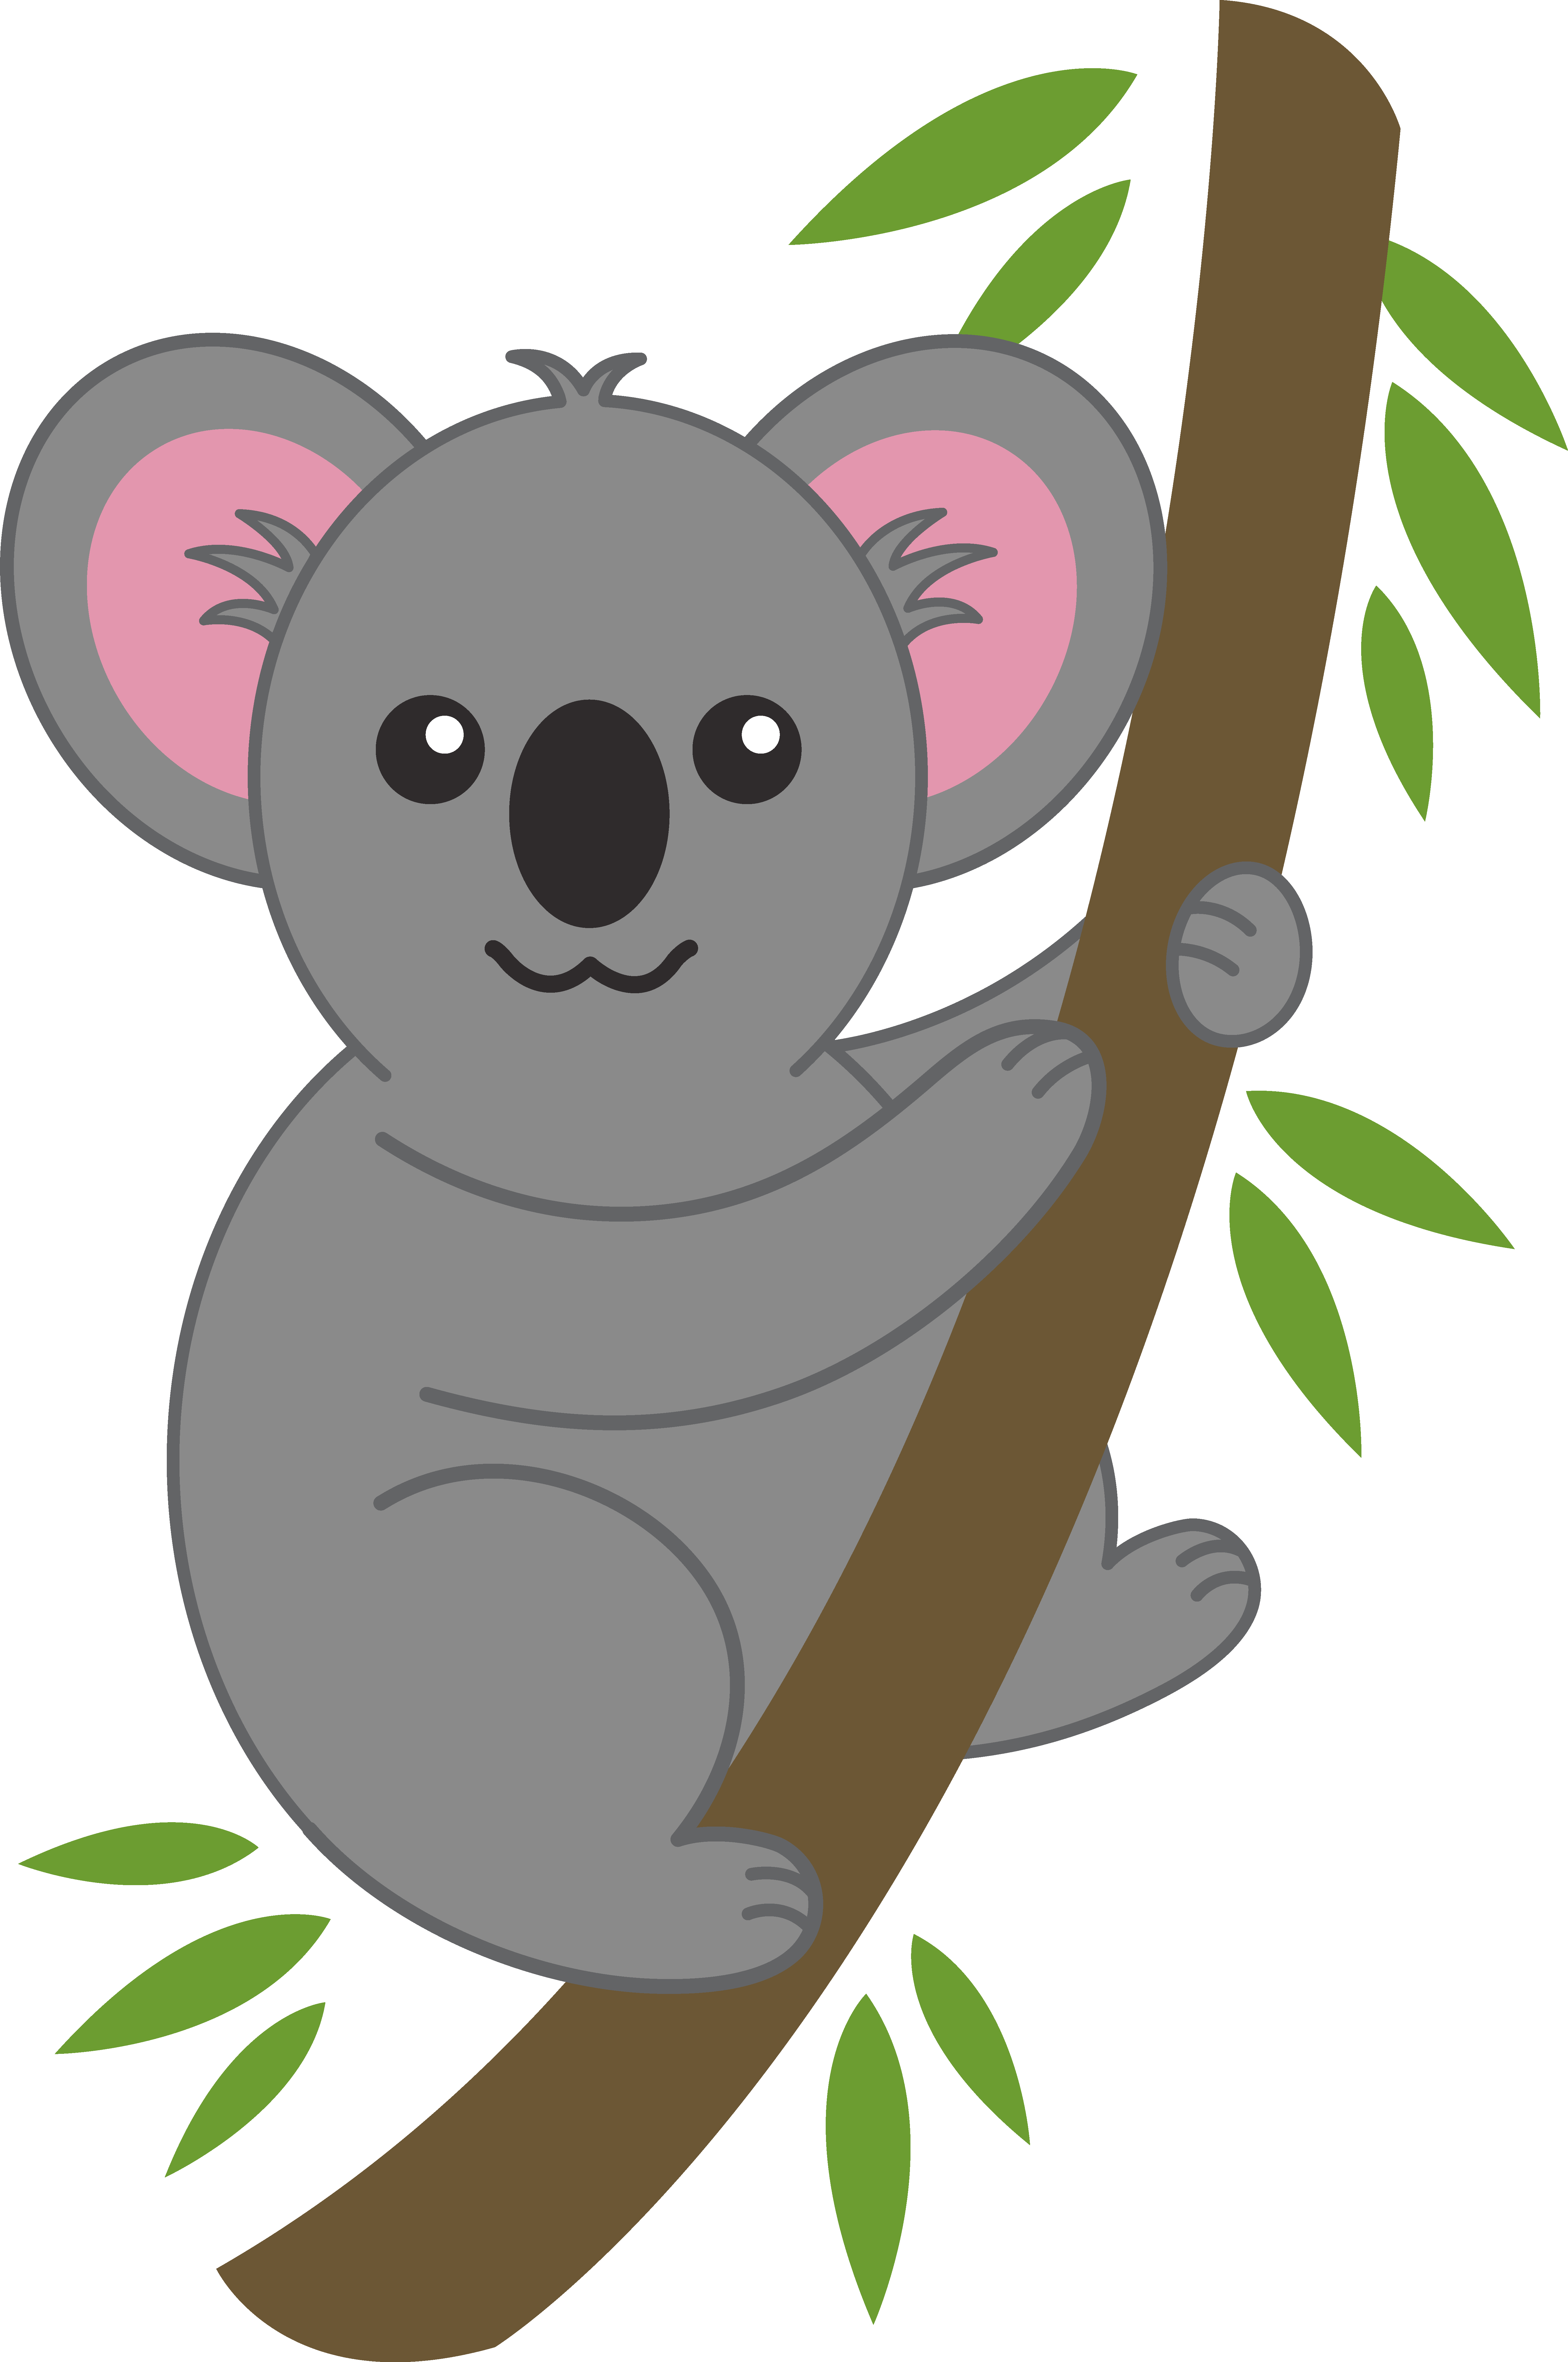 Climb tree clipart image free 28+ Collection of Koala In A Tree Clipart | High quality, free ... image free